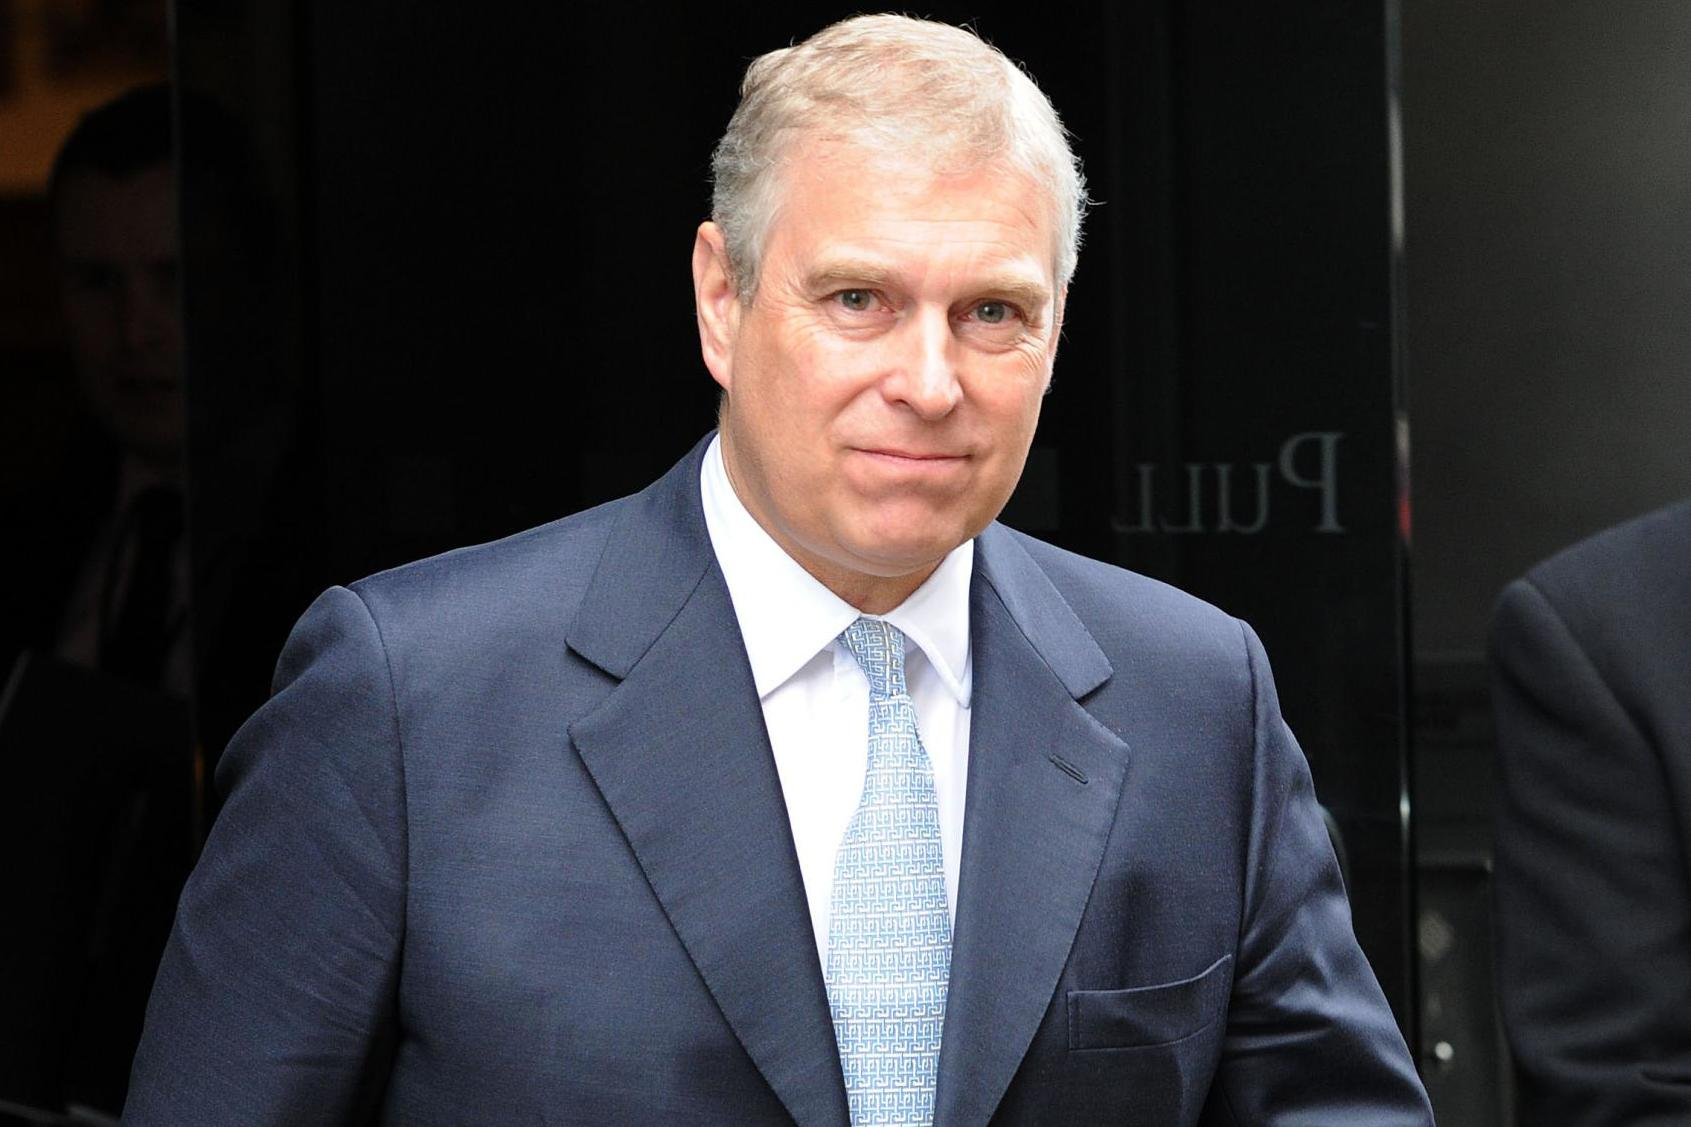 Prince Andrew: Who is the royal and where is he in line to the throne?